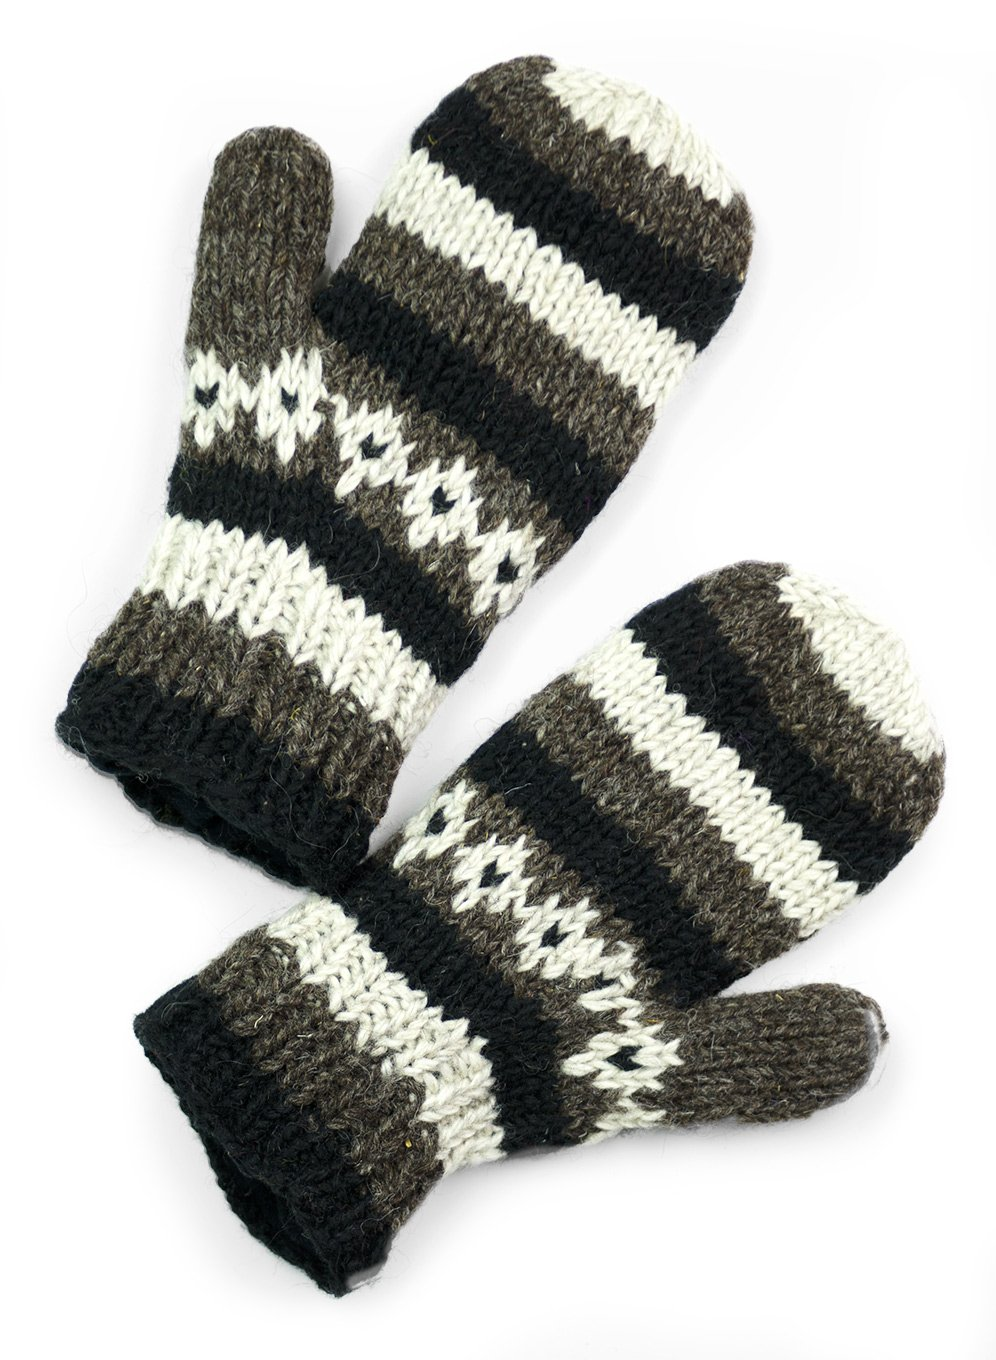 TCG Women's Hand Knit Wool Vintage Striped Mittens - Charcoal & Black